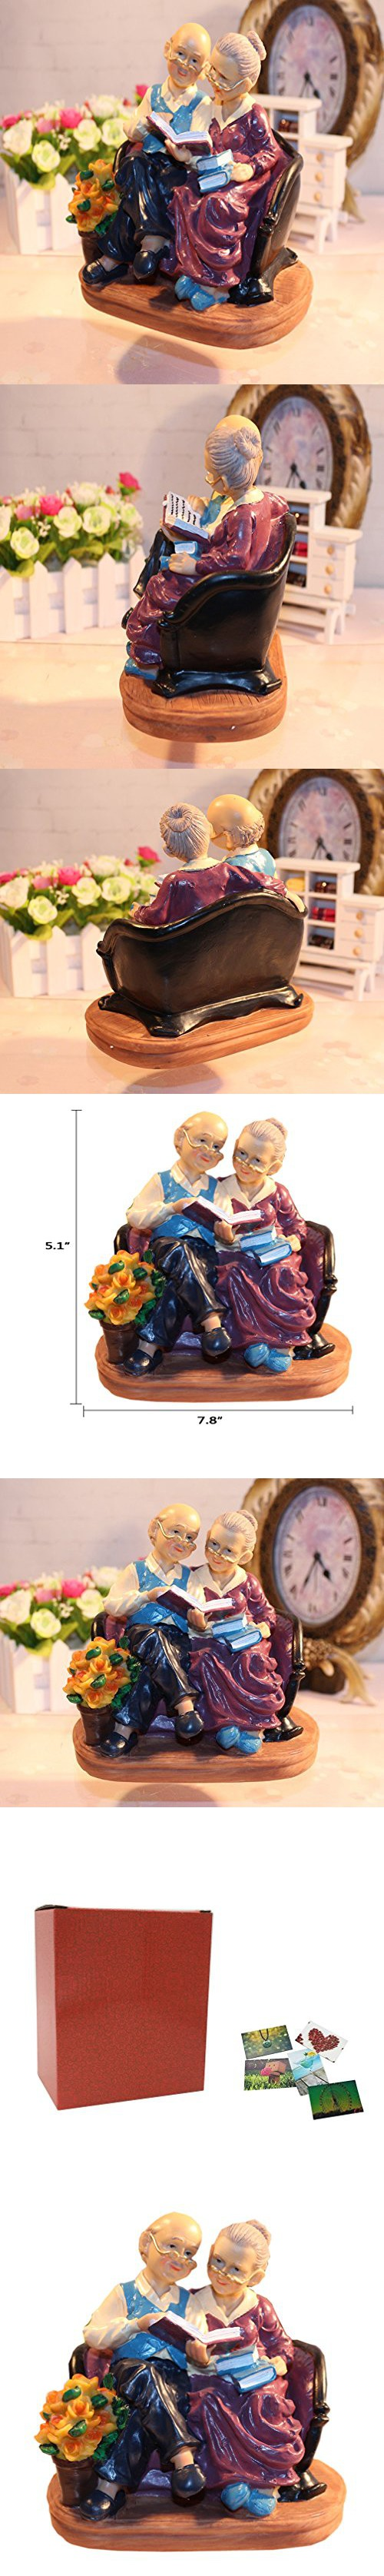 Coostyle Learning Elderly Figurines Loving Old Age Life Resin Home Decorations With Gift Card